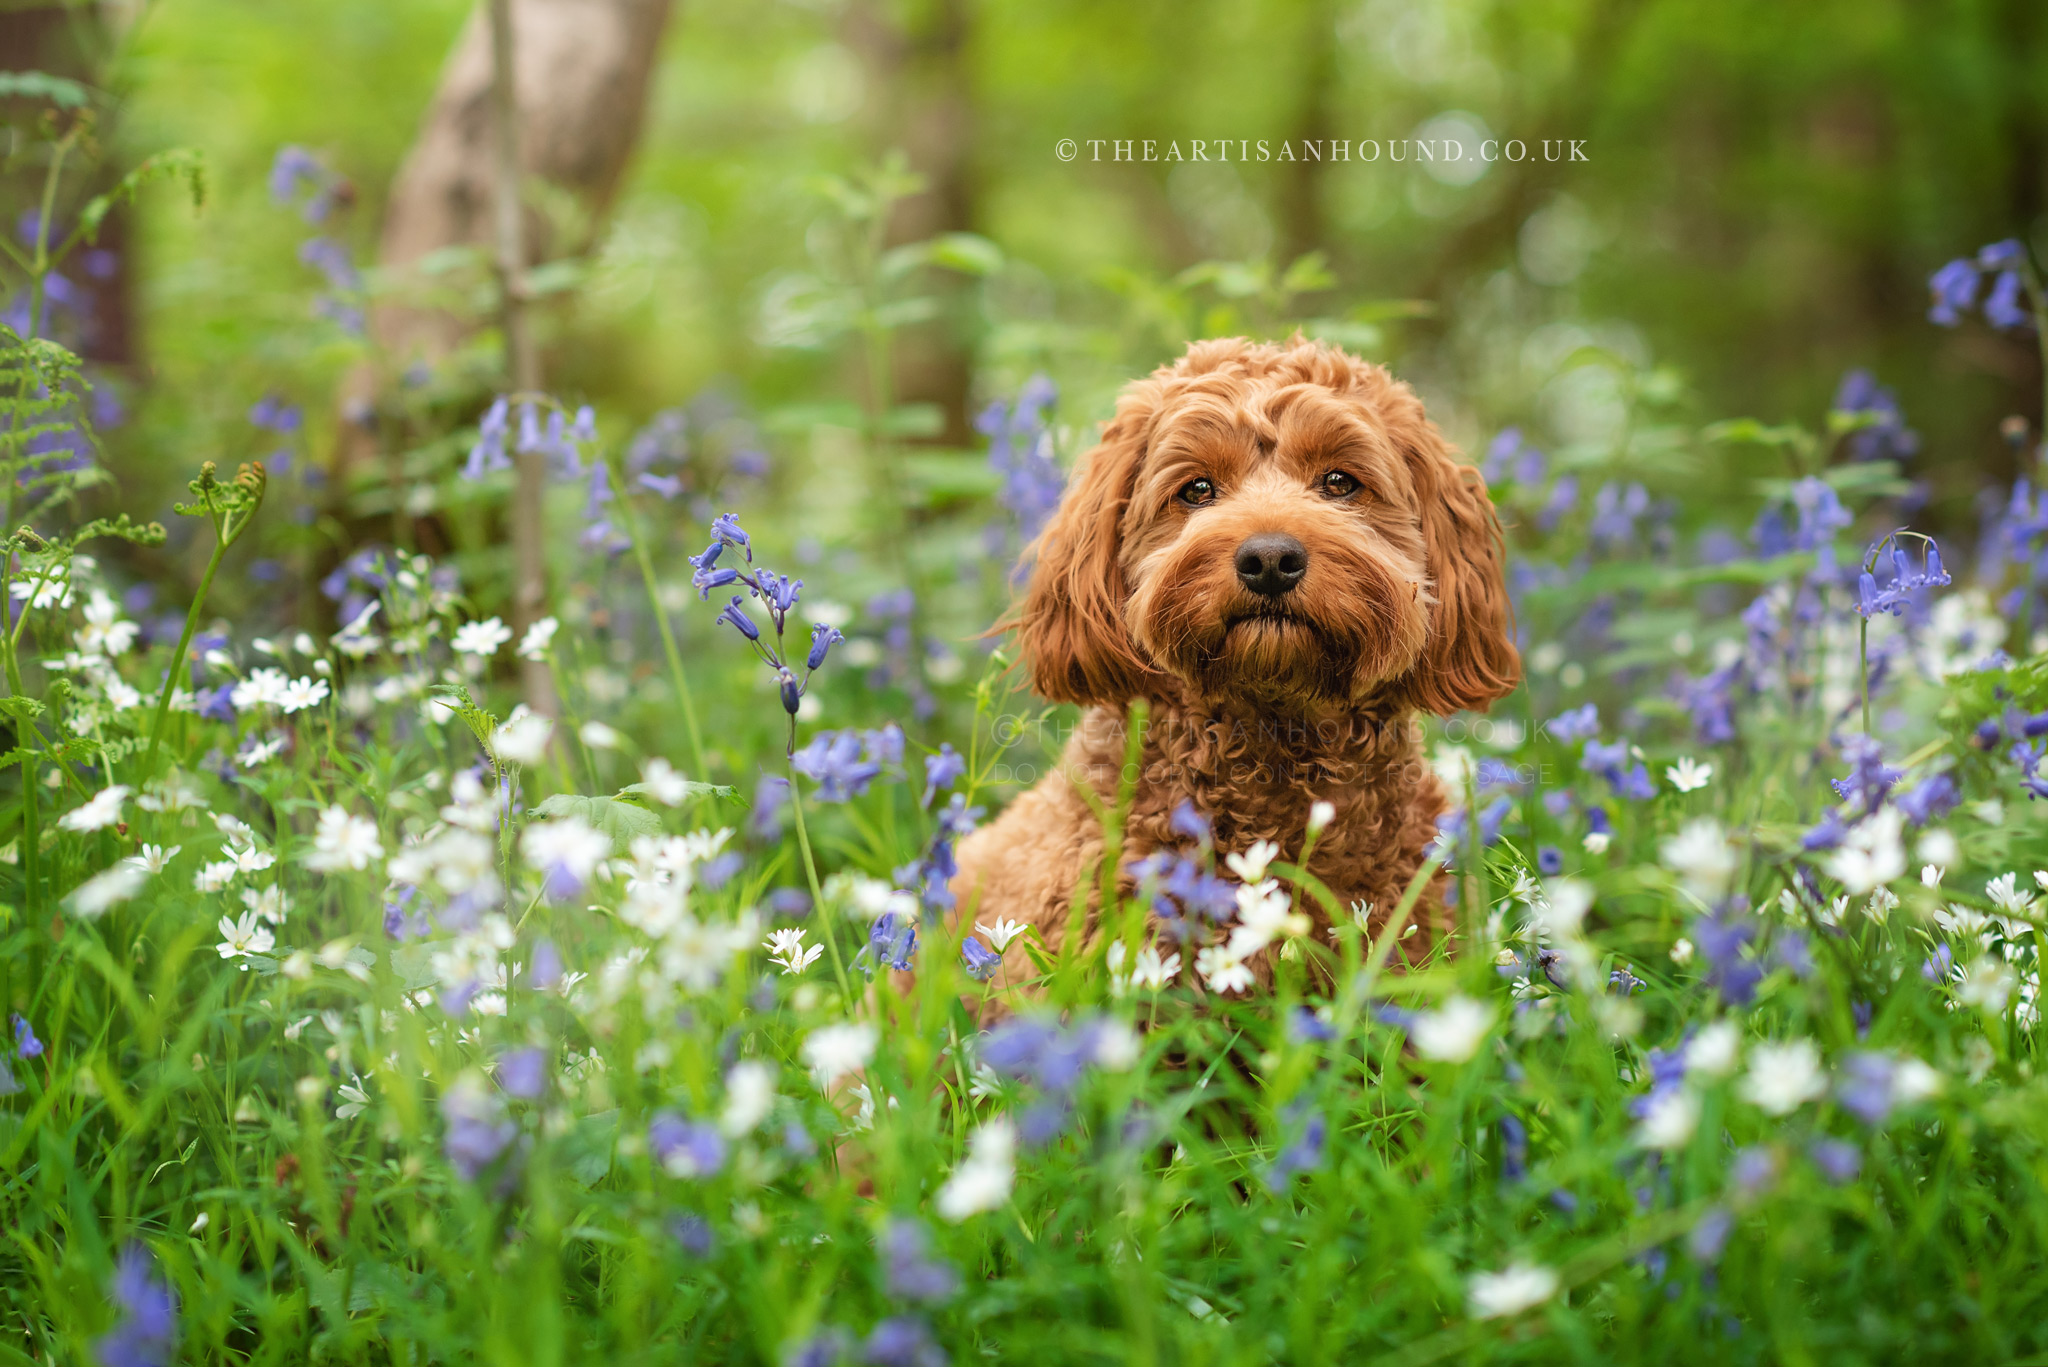 Puppy sitting in blue and white flowers